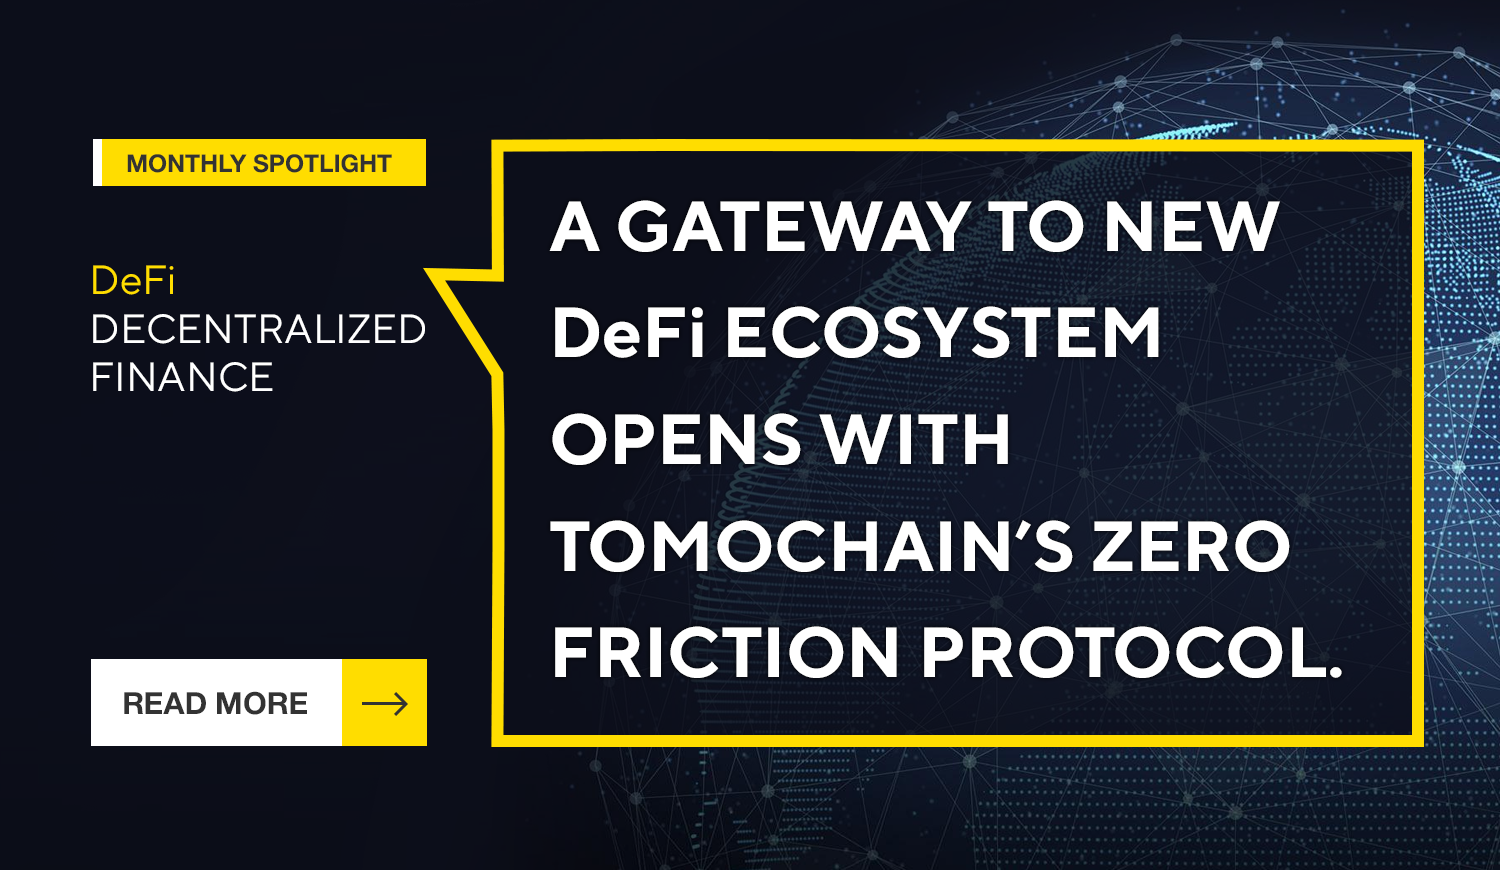 A Gateway to New DeFi Ecosystem Opens with Tomochain's Zero Friction Protocol